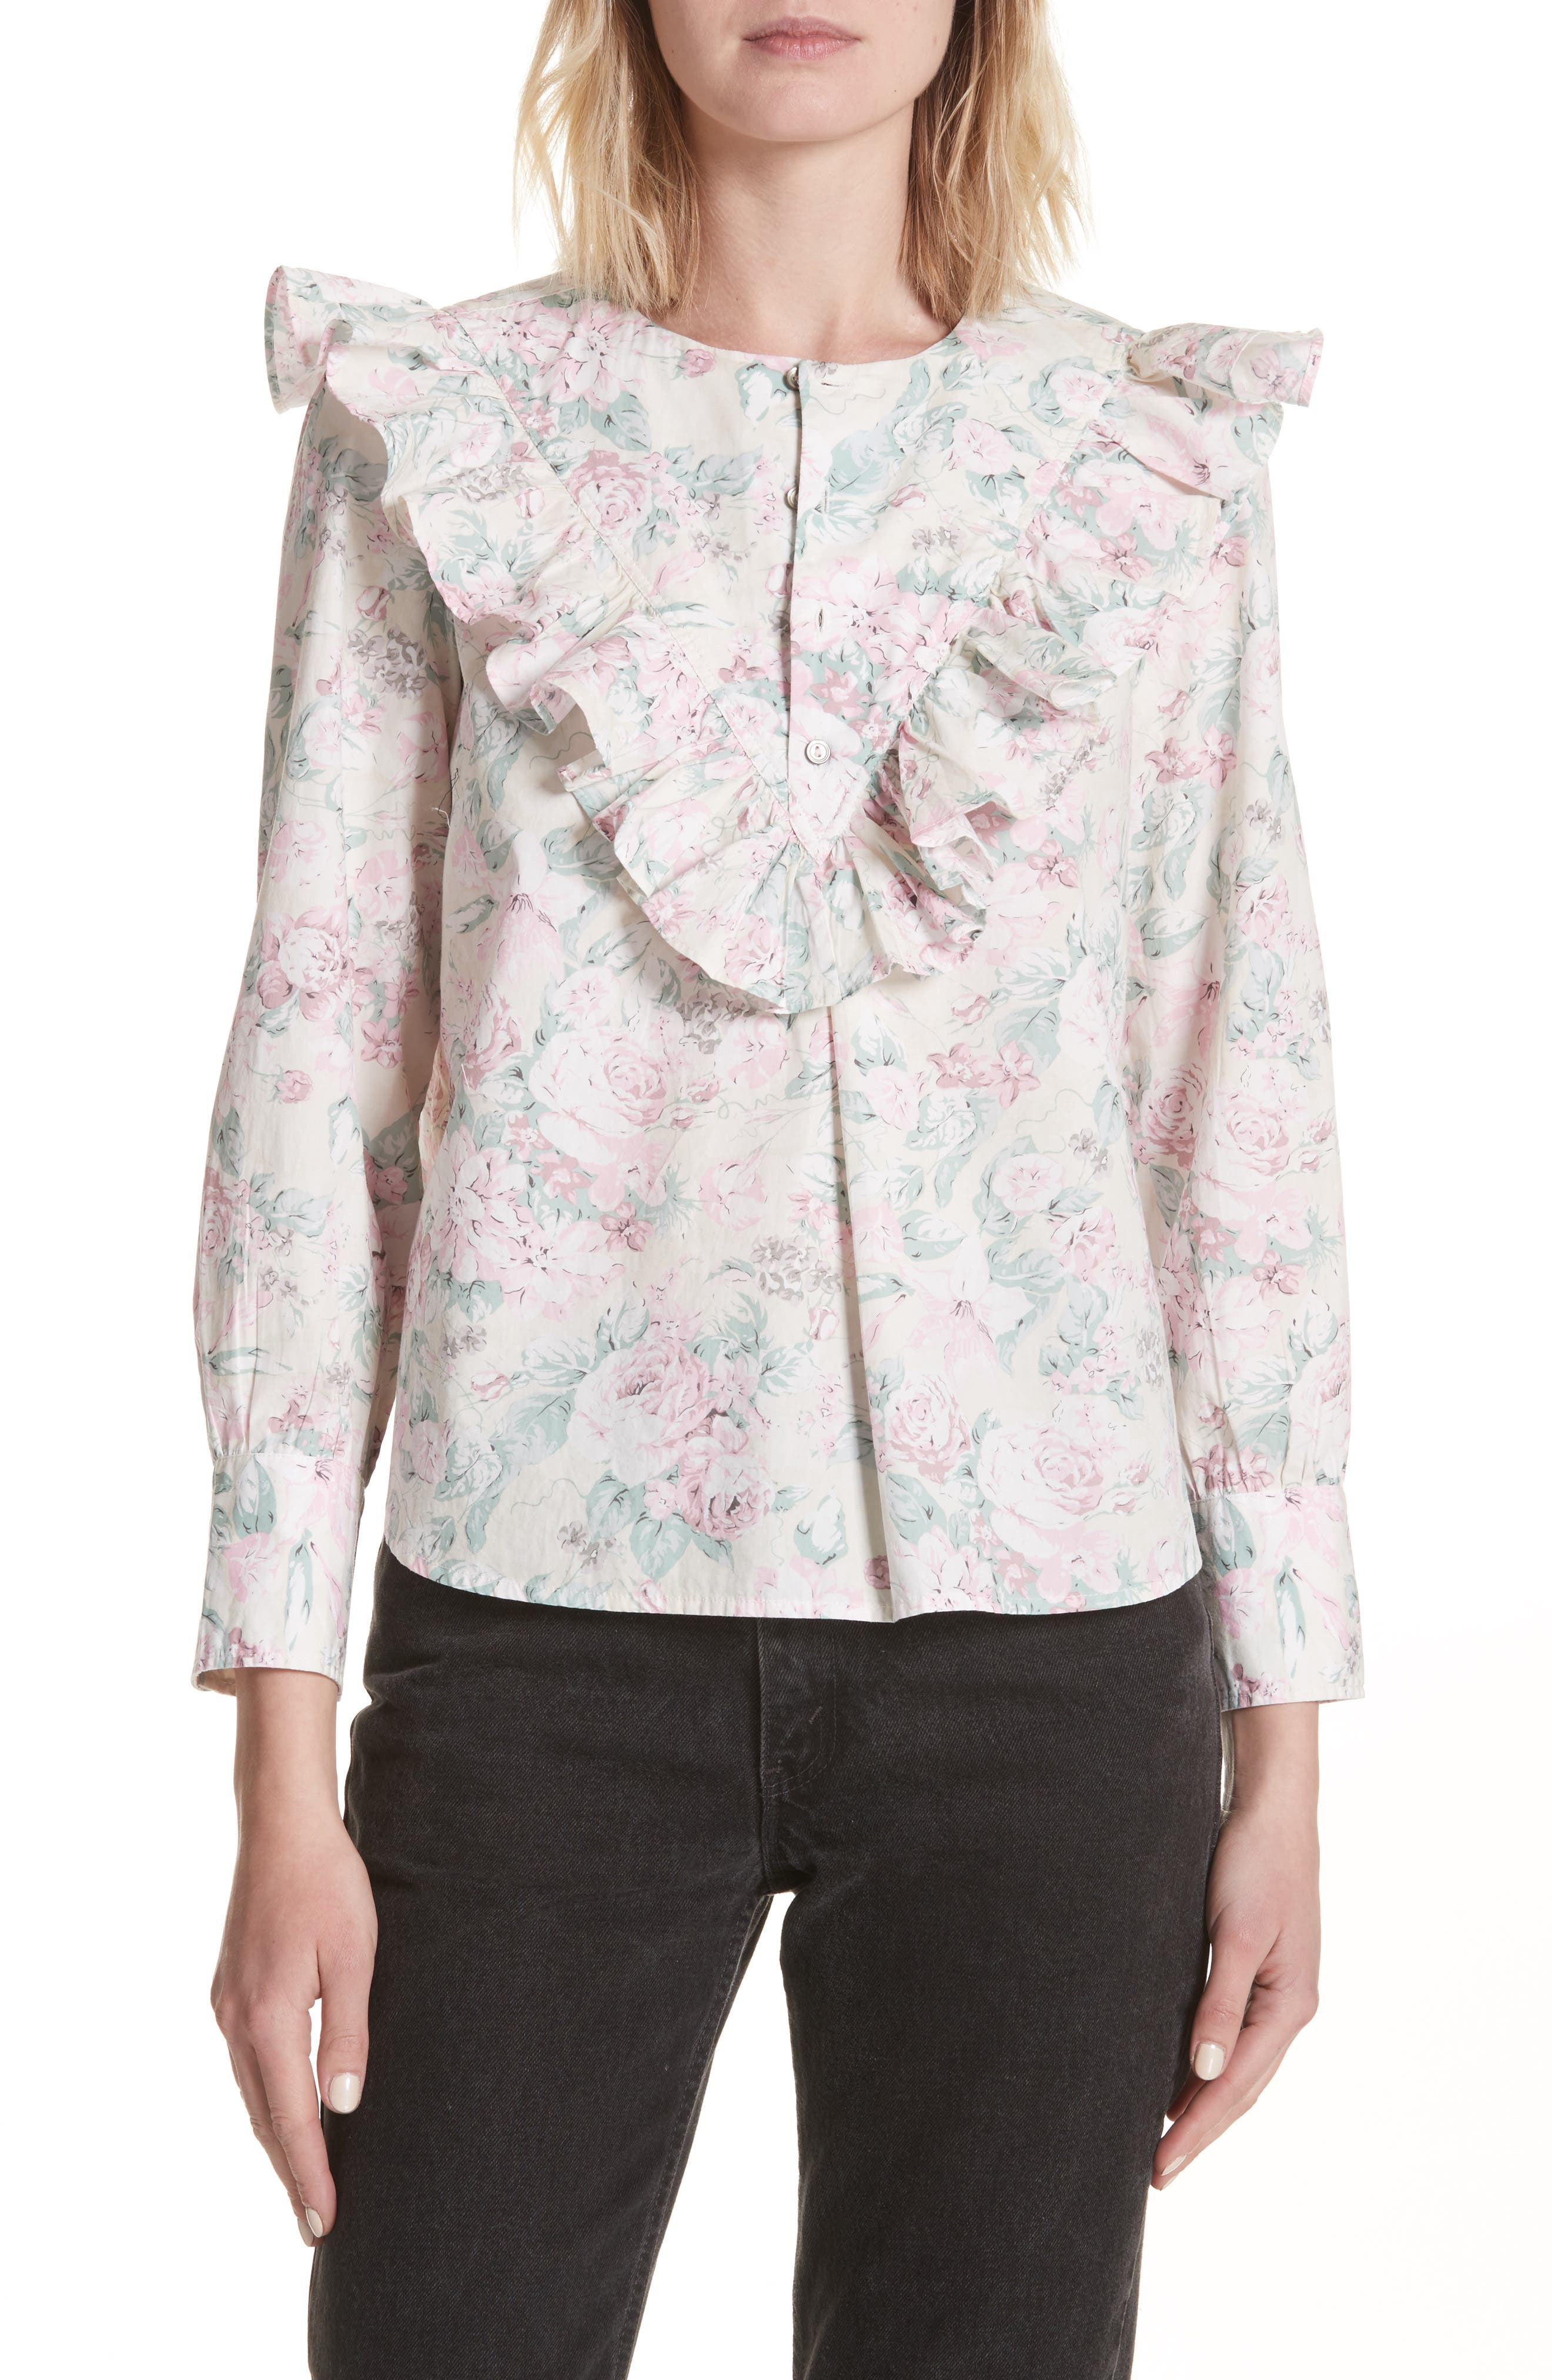 Rose Garden Top,                             Main thumbnail 1, color,                             Multi